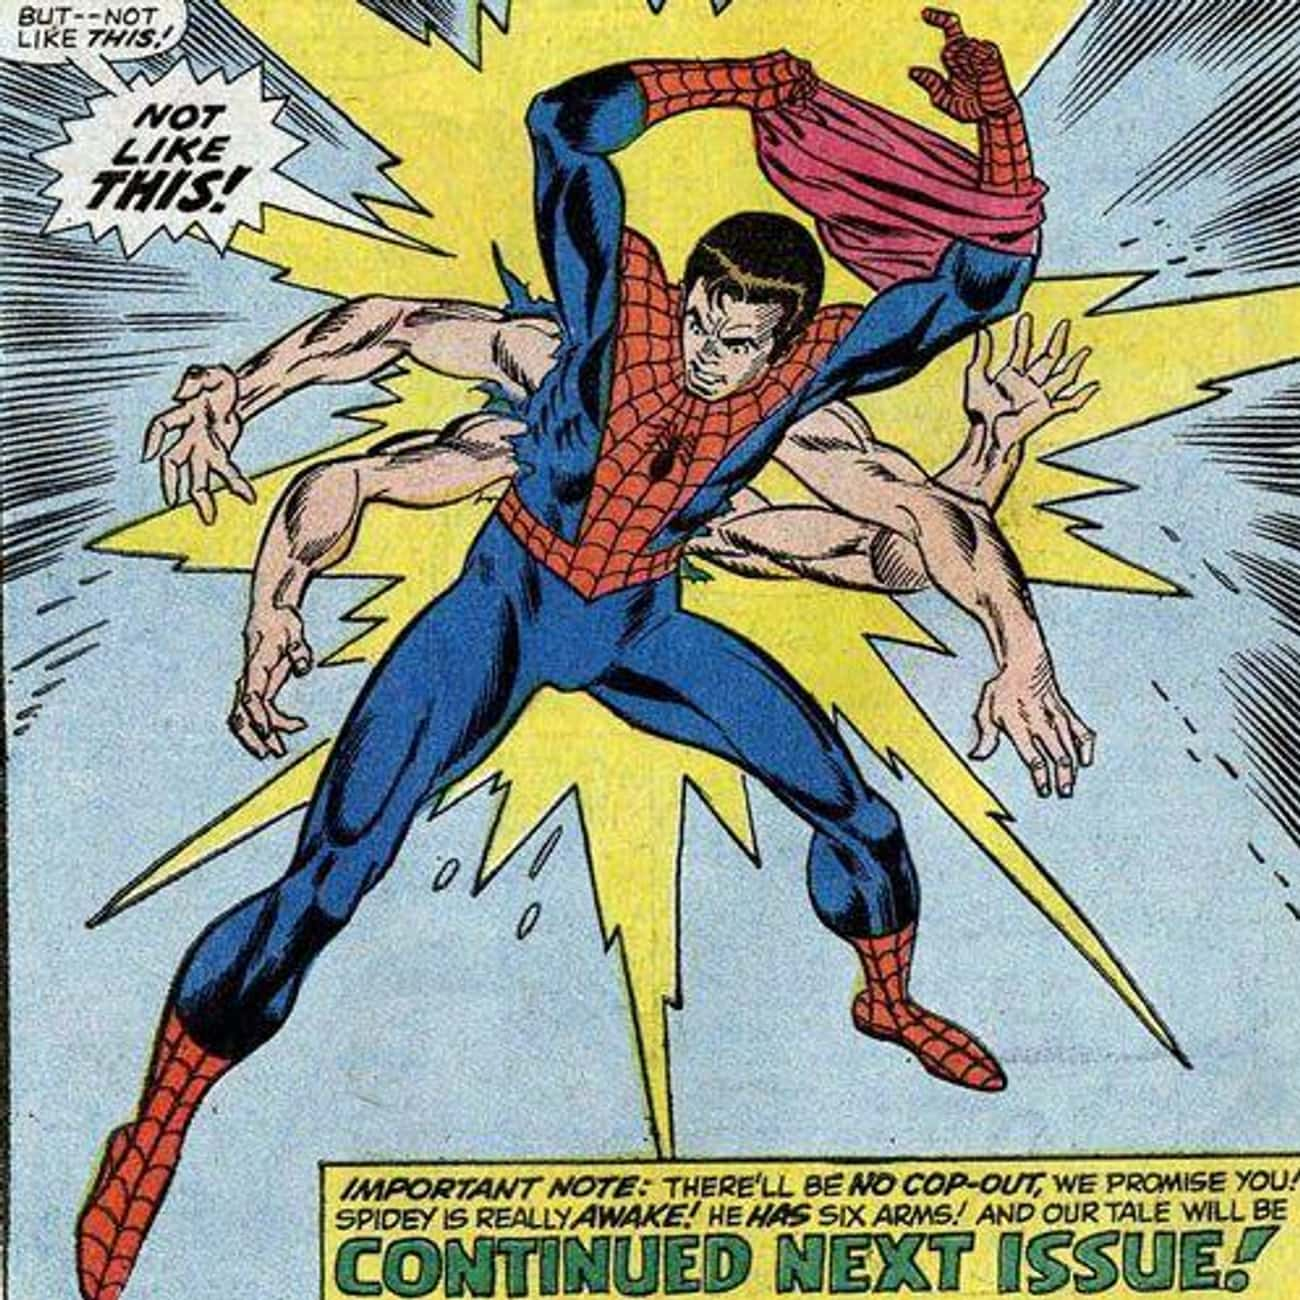 Peter Parker Growing Six Arms is listed (or ranked) 1 on the list 11 Bizarre Happenings From Spider-Man's Youth That Won't Show Up In The MCU